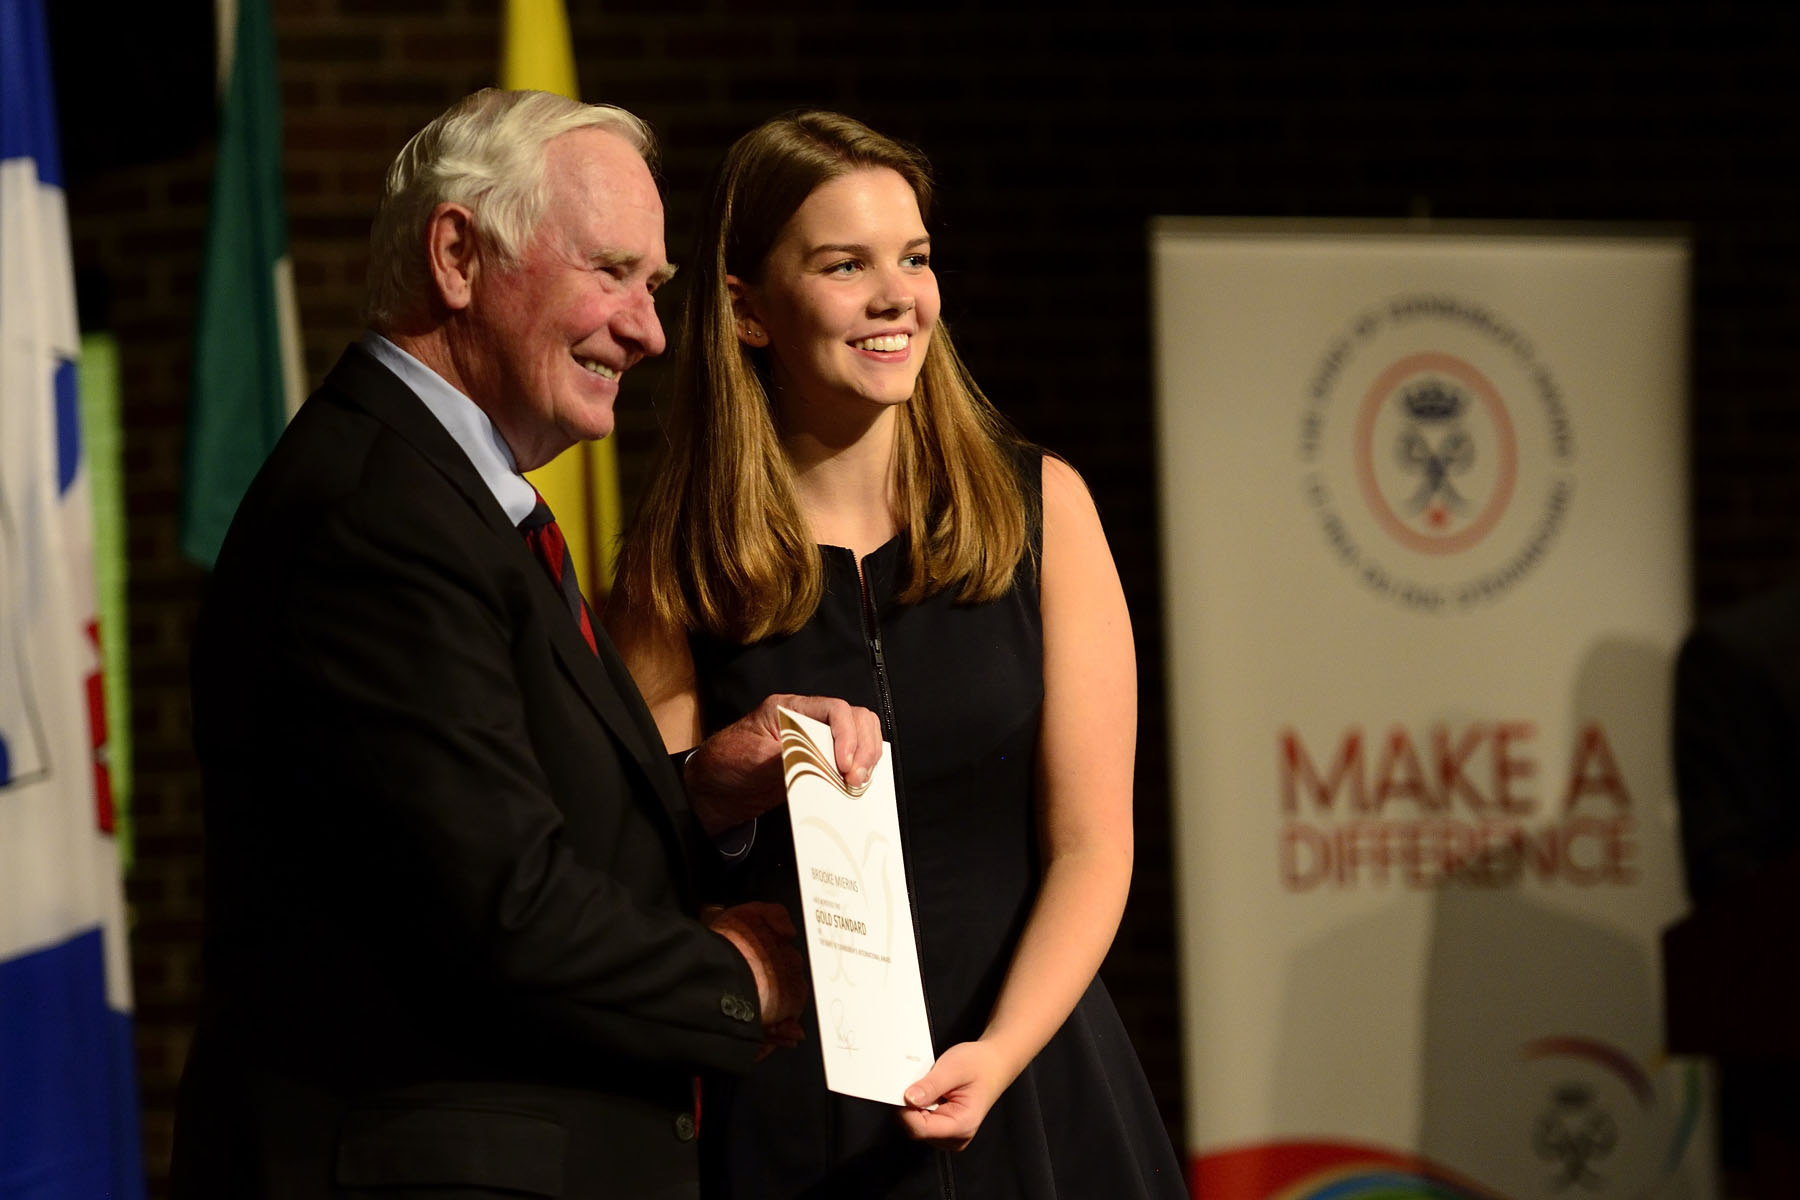 The Governor General presented The Duke of Edinburgh's Gold Award to more than 50 young people from across Canada.